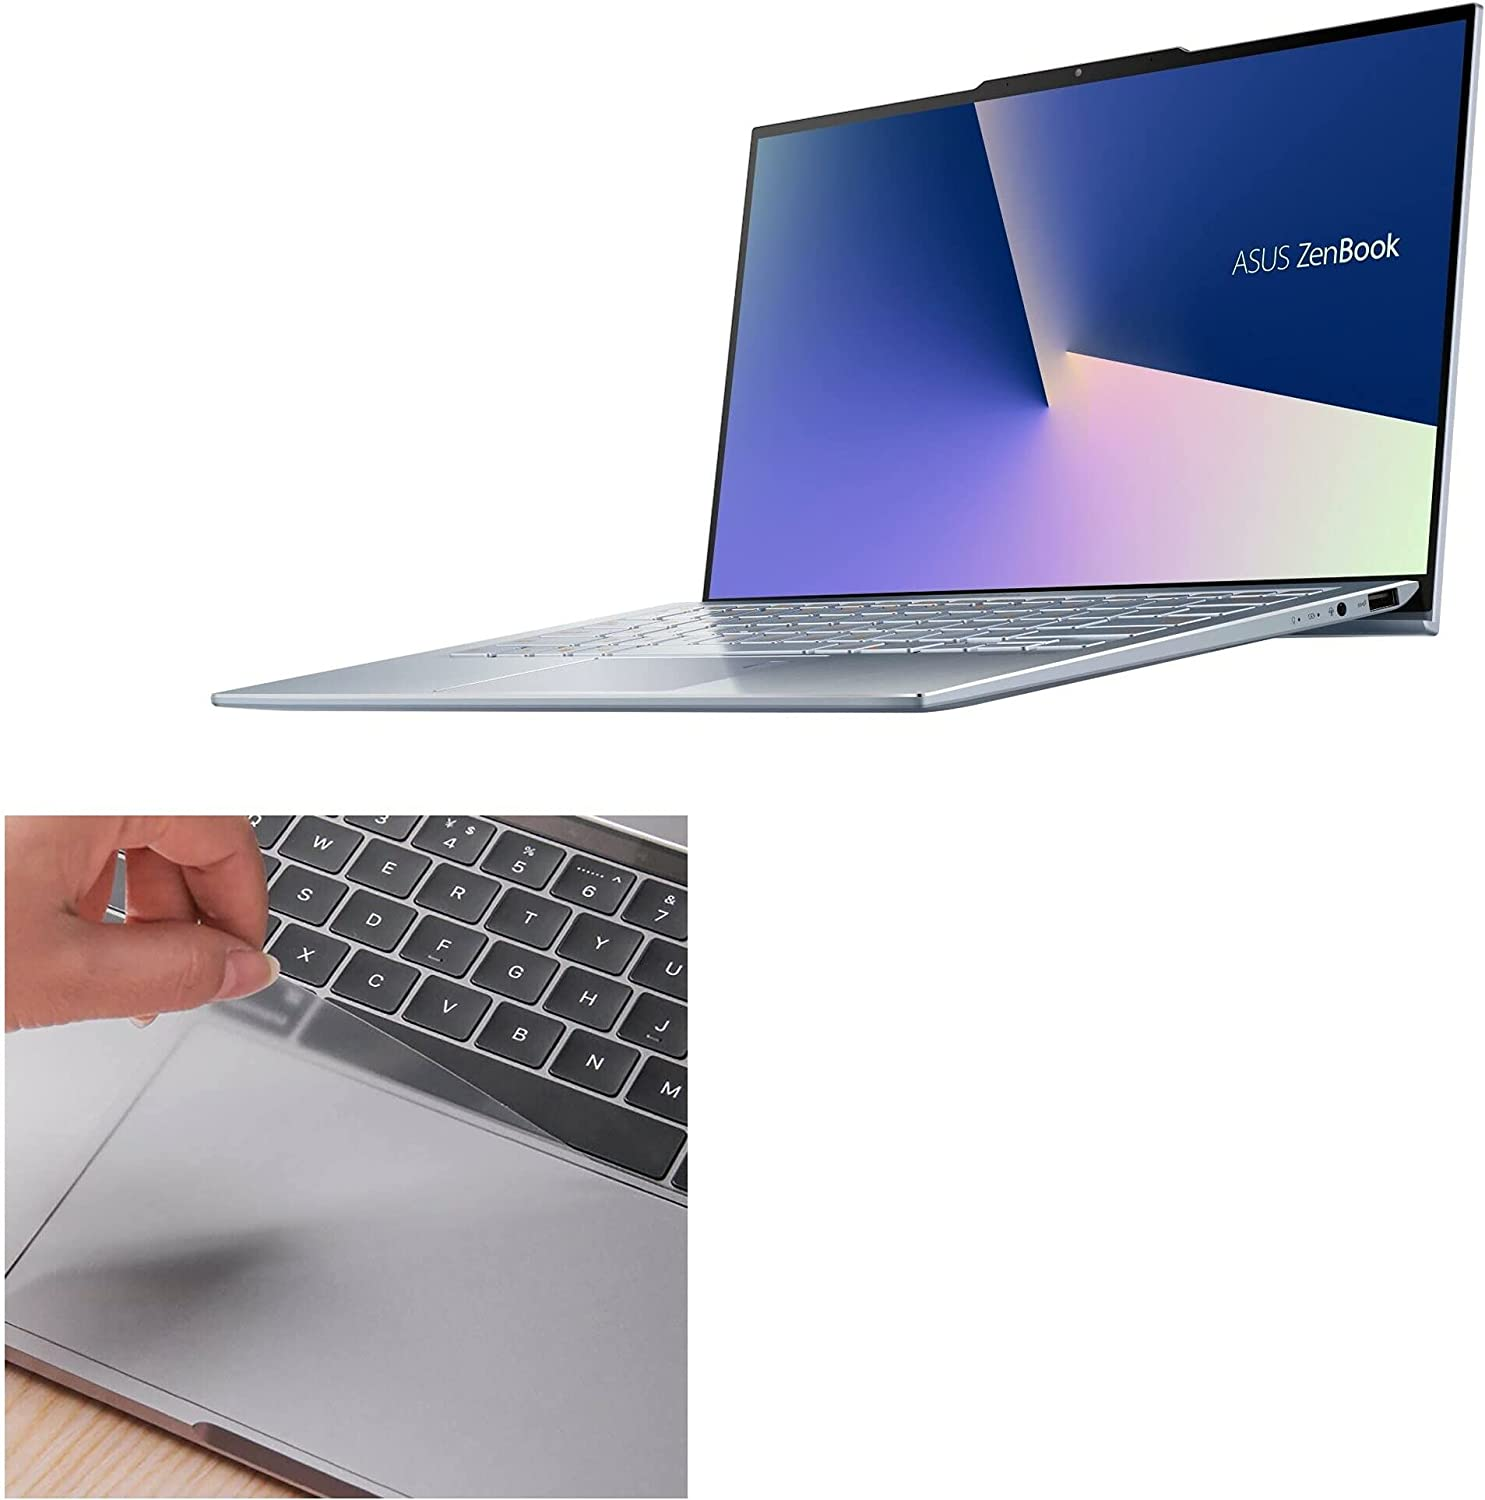 Touchpad Sales Protector for ASUS ZenBook Sales sale Protec S13 UX392